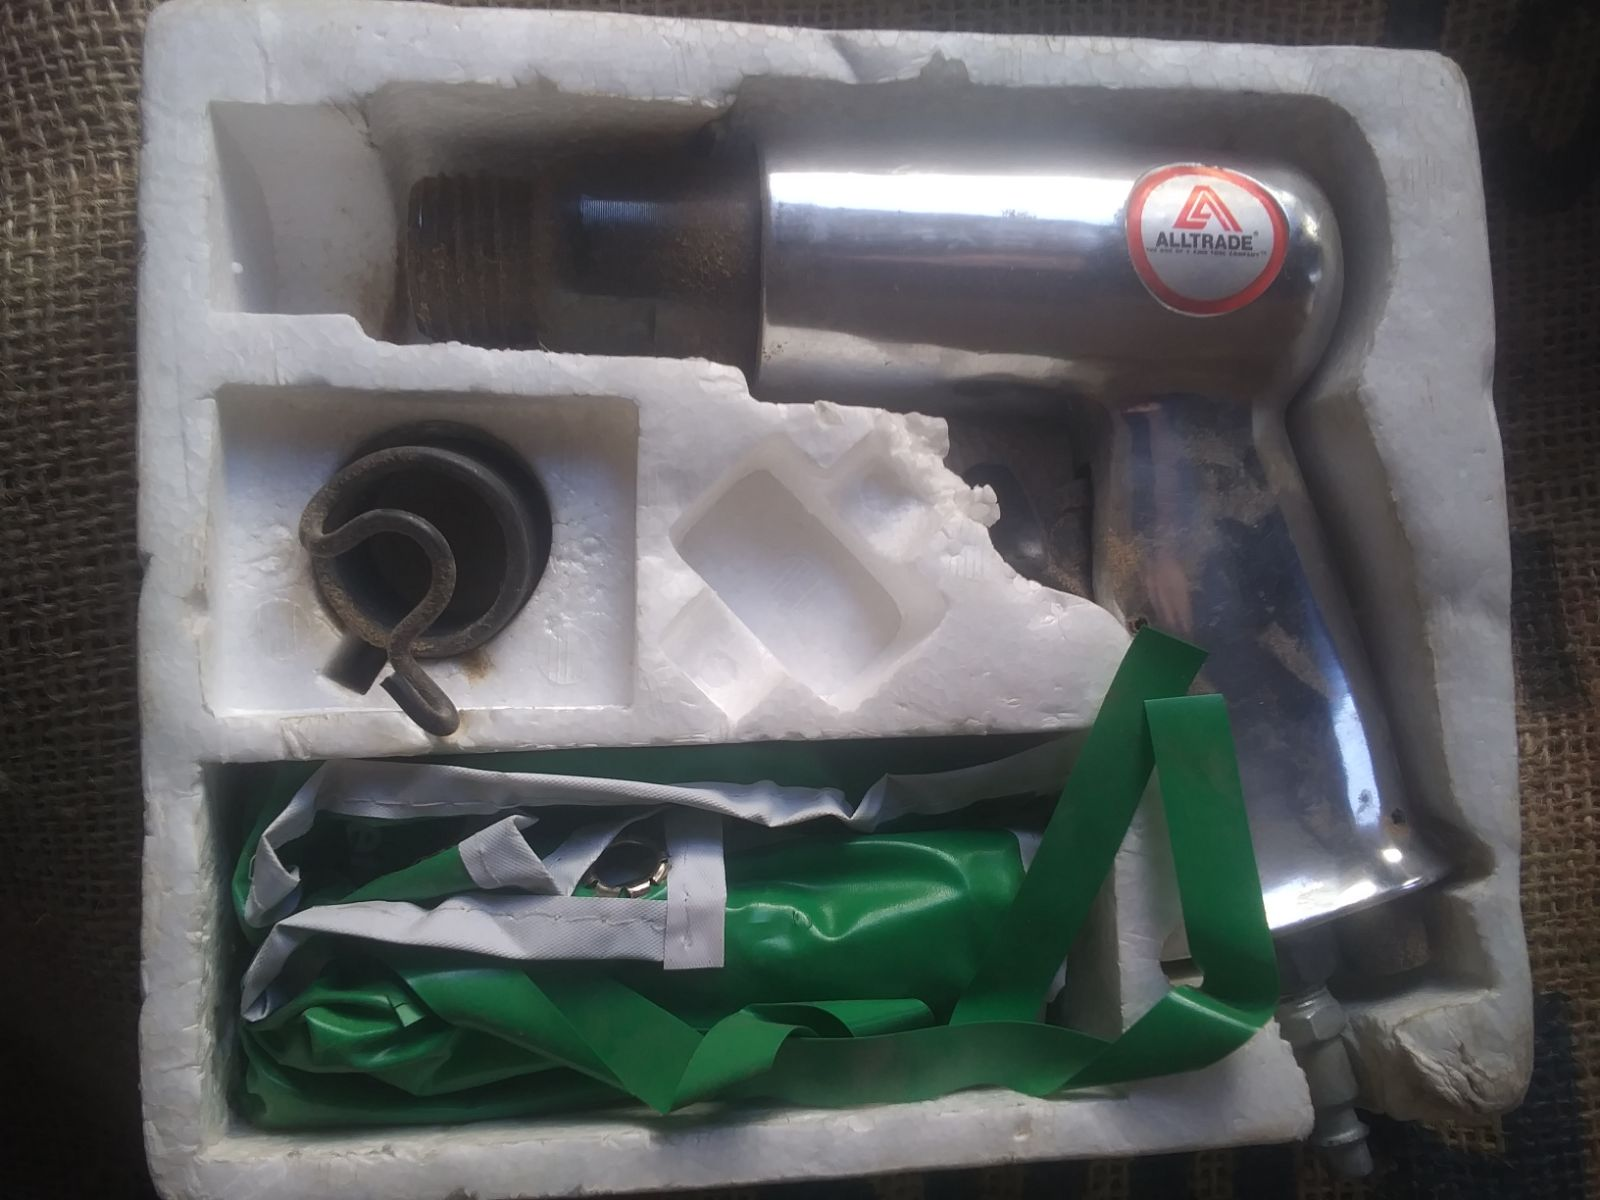 air hammer chisel set in box